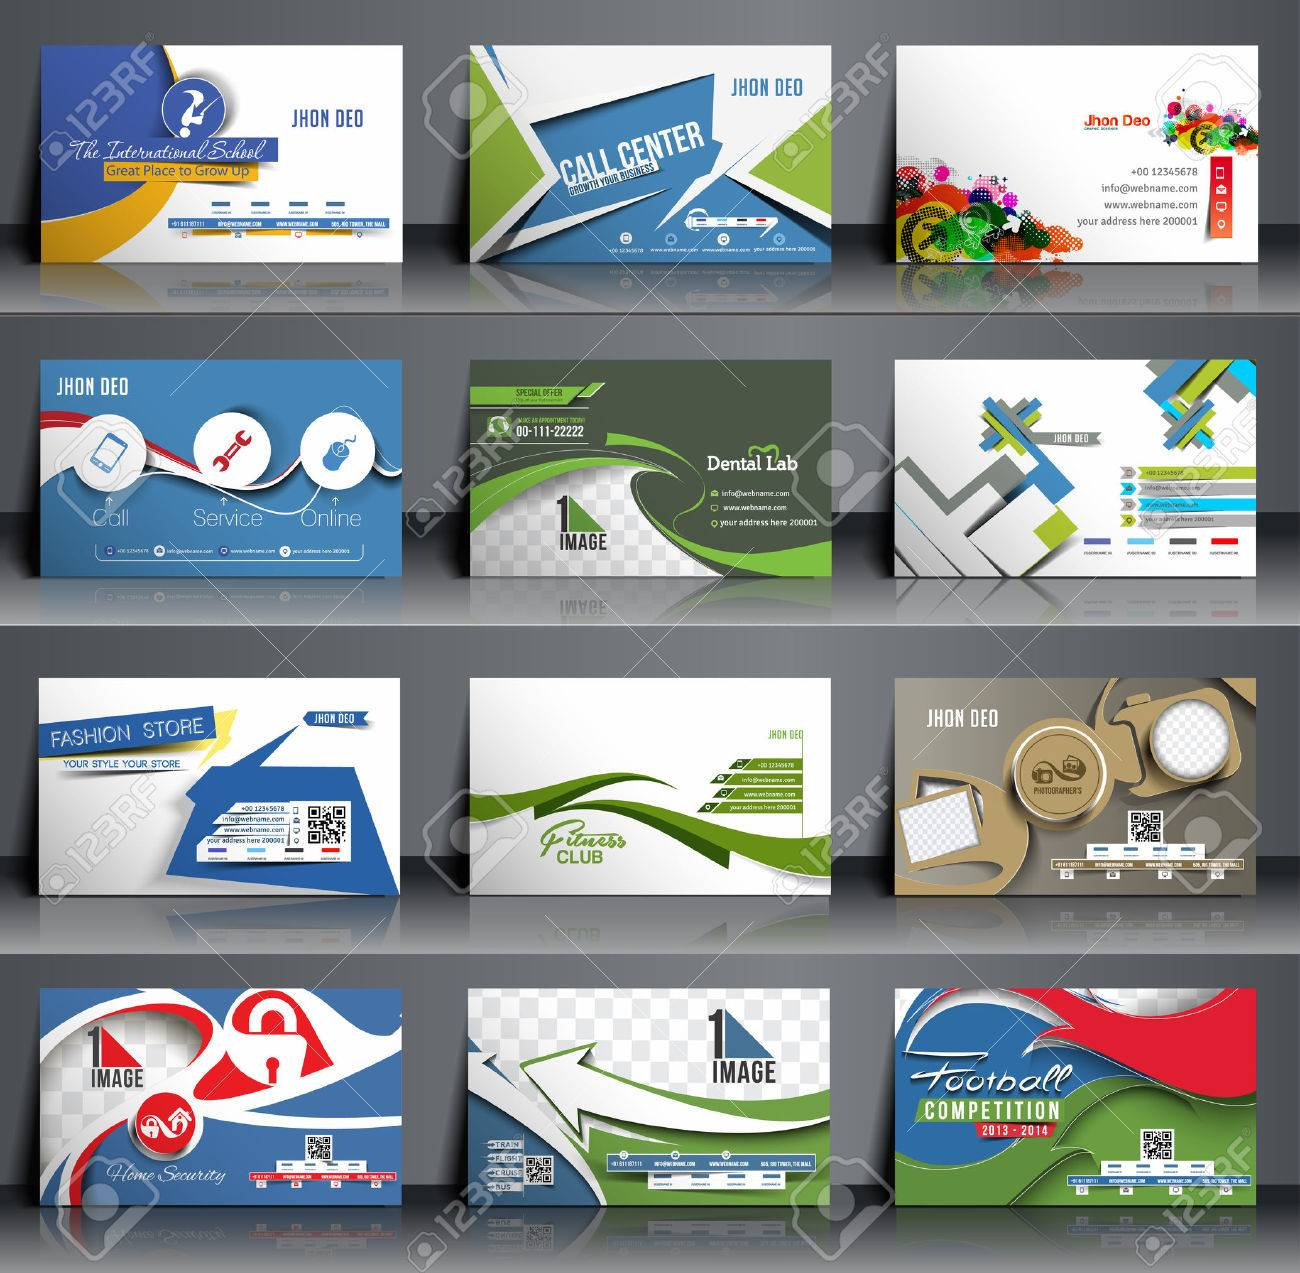 Mega Collection Business Card Template Design. Royalty Free Cliparts ...